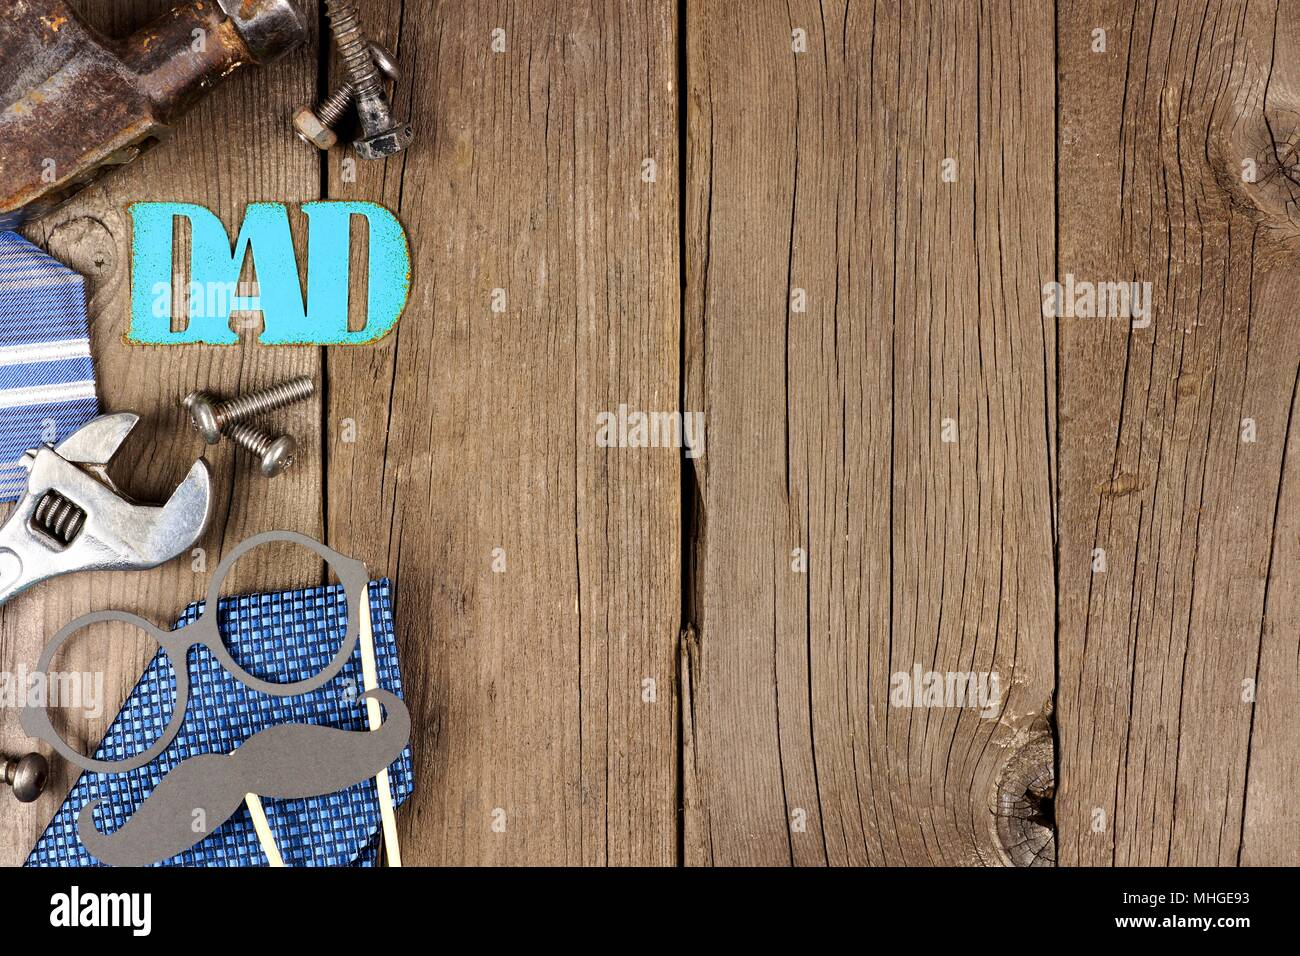 Metallic DAD sign with side border of tools and ties on a wooden background - Stock Image